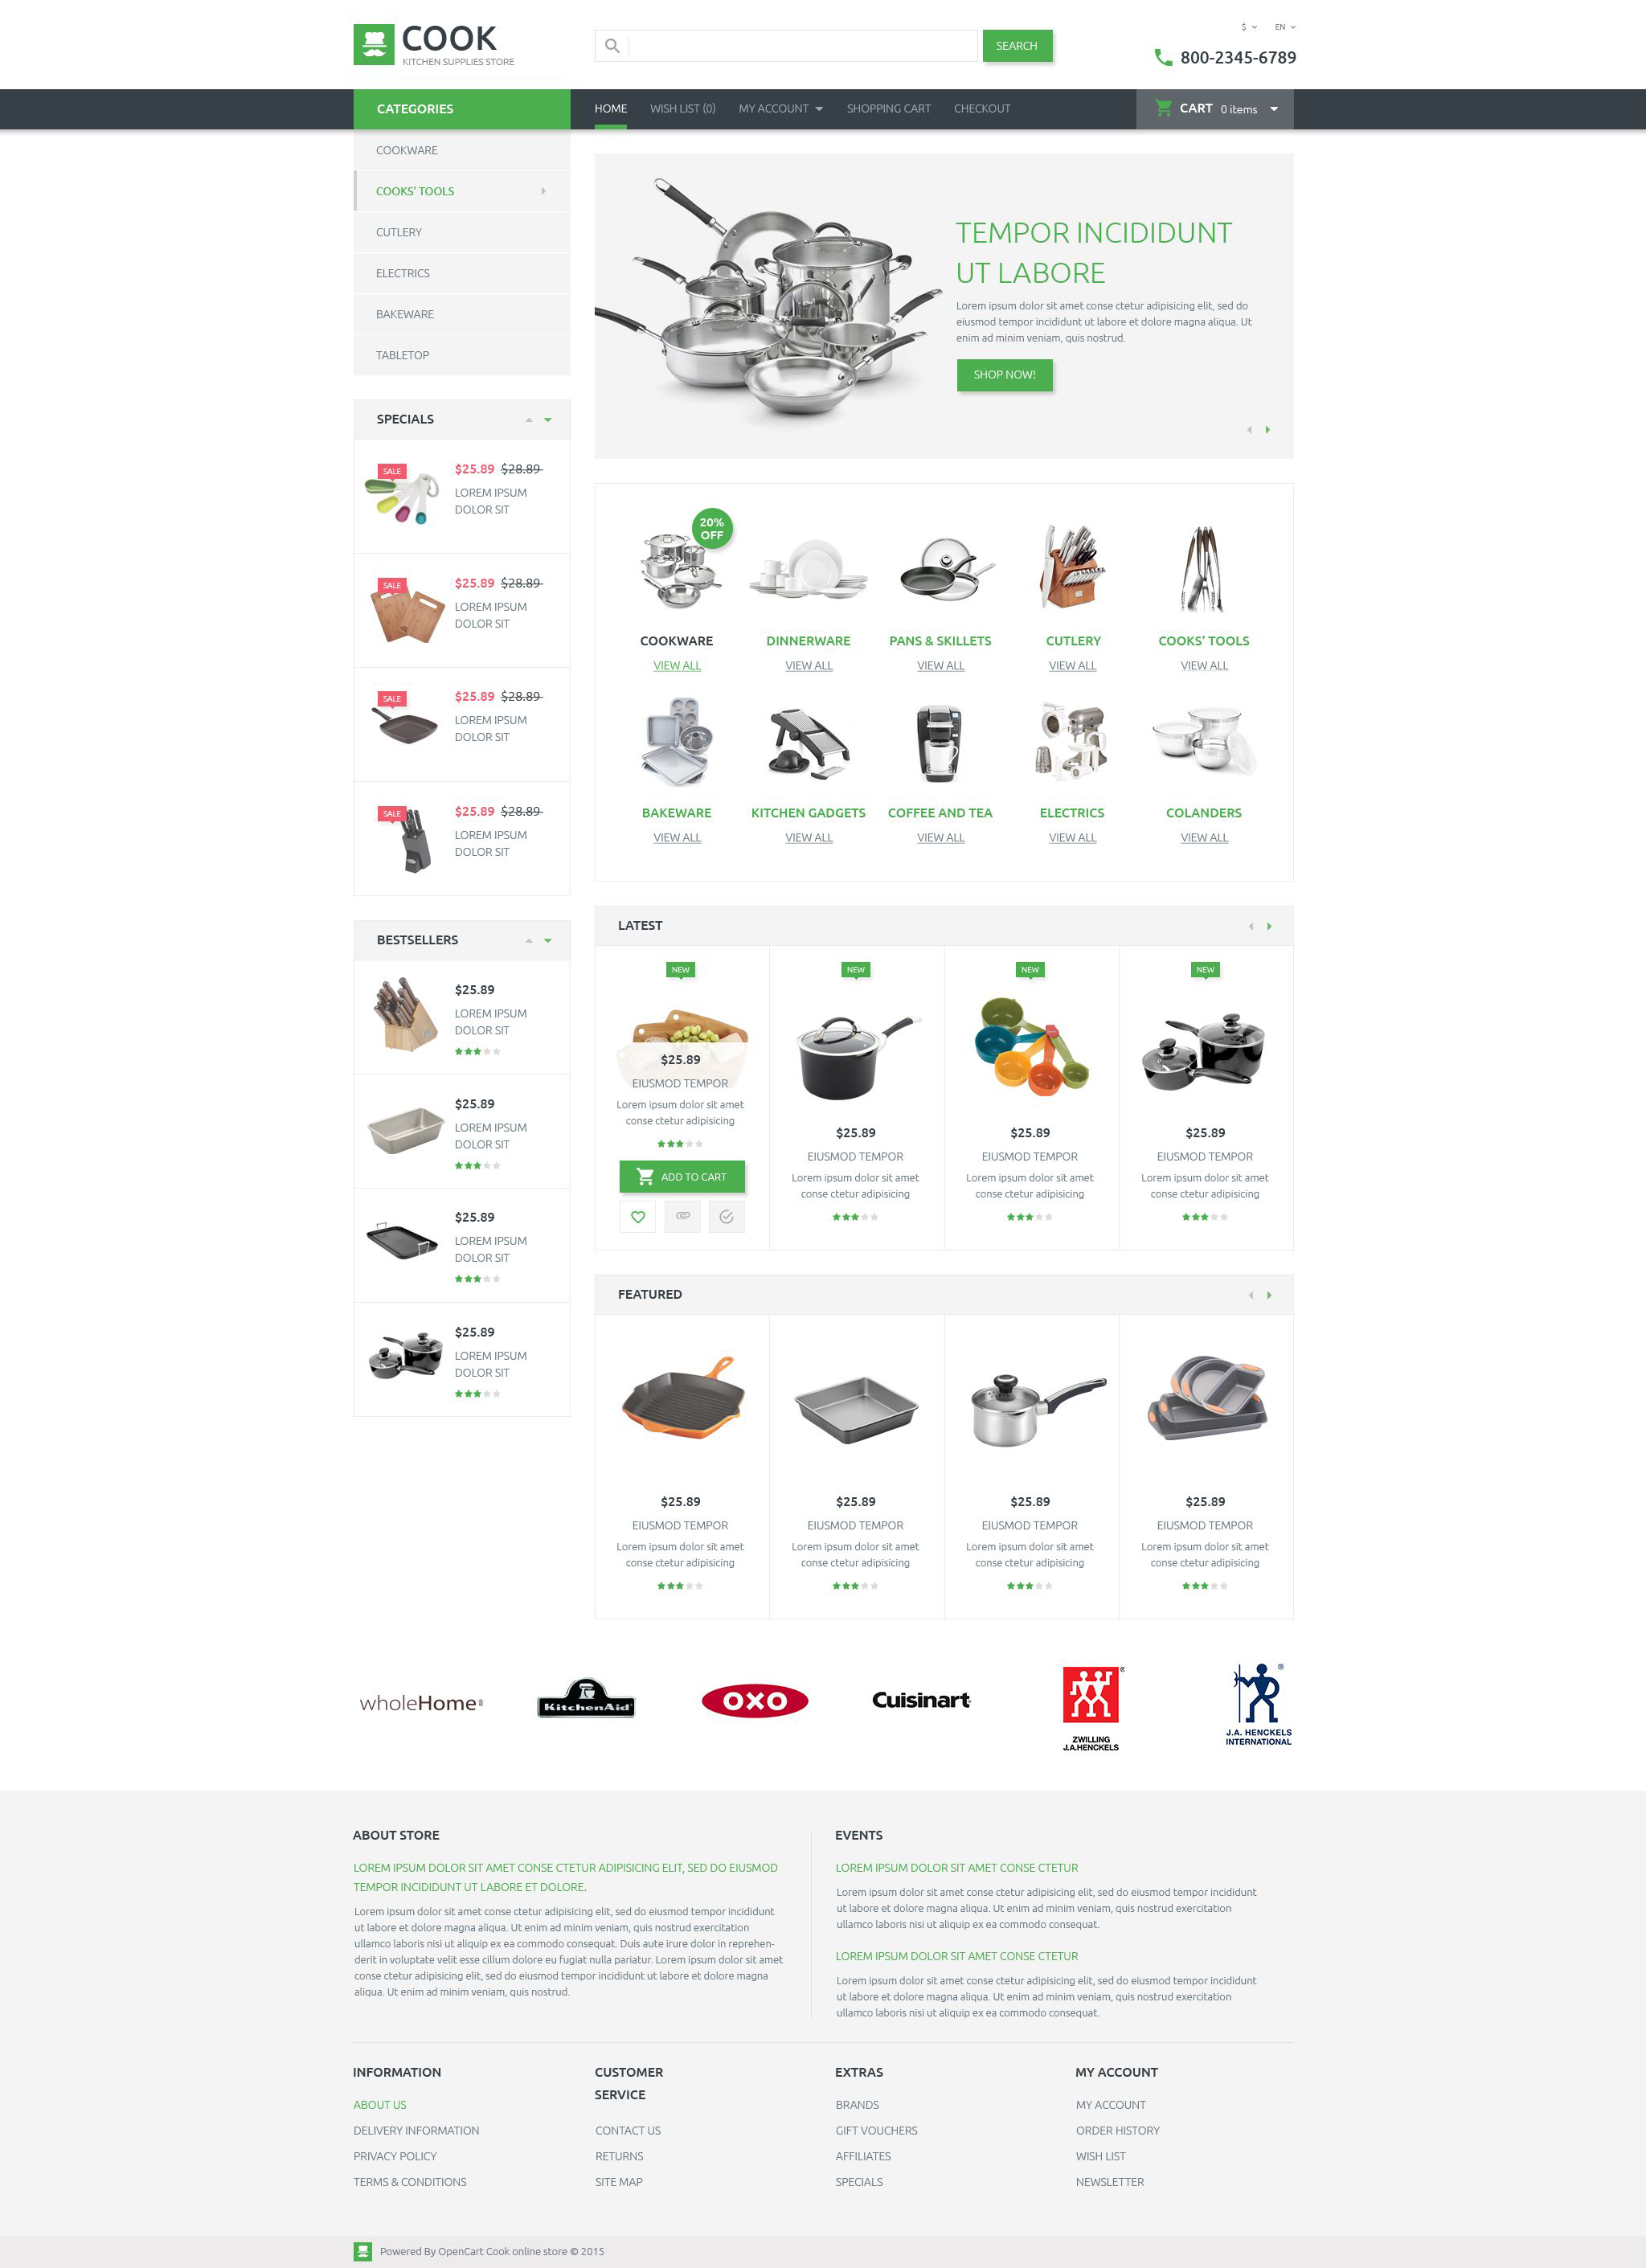 The Cook Kitchen OpenCart Design 53708, one of the best OpenCart templates of its kind (interior & furniture, most popular), also known as cook kitchen OpenCart template, supplies store OpenCart template, glassware OpenCart template, tableware OpenCart template, the OpenCart template, dishes OpenCart template, tinware OpenCart template, kitchen OpenCart template, utensils OpenCart template, tea OpenCart template, things OpenCart template, pottery OpenCart template, dishware OpenCart template, houseware OpenCart template, plates OpenCart template, dishes OpenCart template, dinnerware OpenCart template, kitchenware and related with cook kitchen, supplies store, glassware, tableware, the, dishes, tinware, kitchen, utensils, tea, things, pottery, dishware, houseware, plates, dishes, dinnerware, kitchenware, etc.